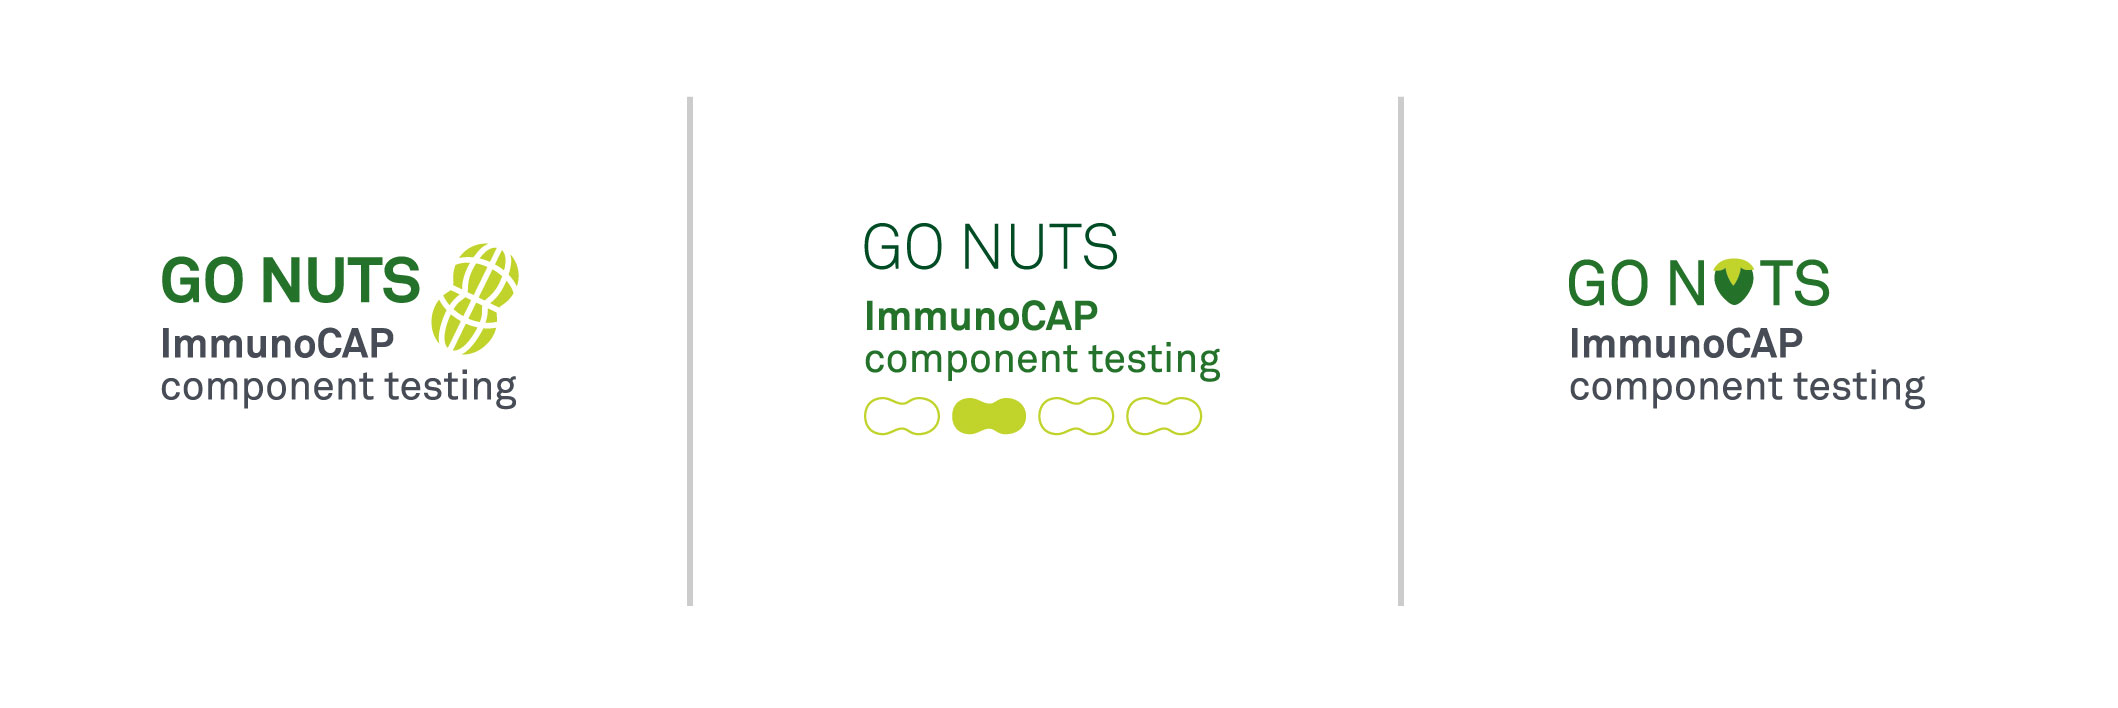 Quest Diagnostics nut testing